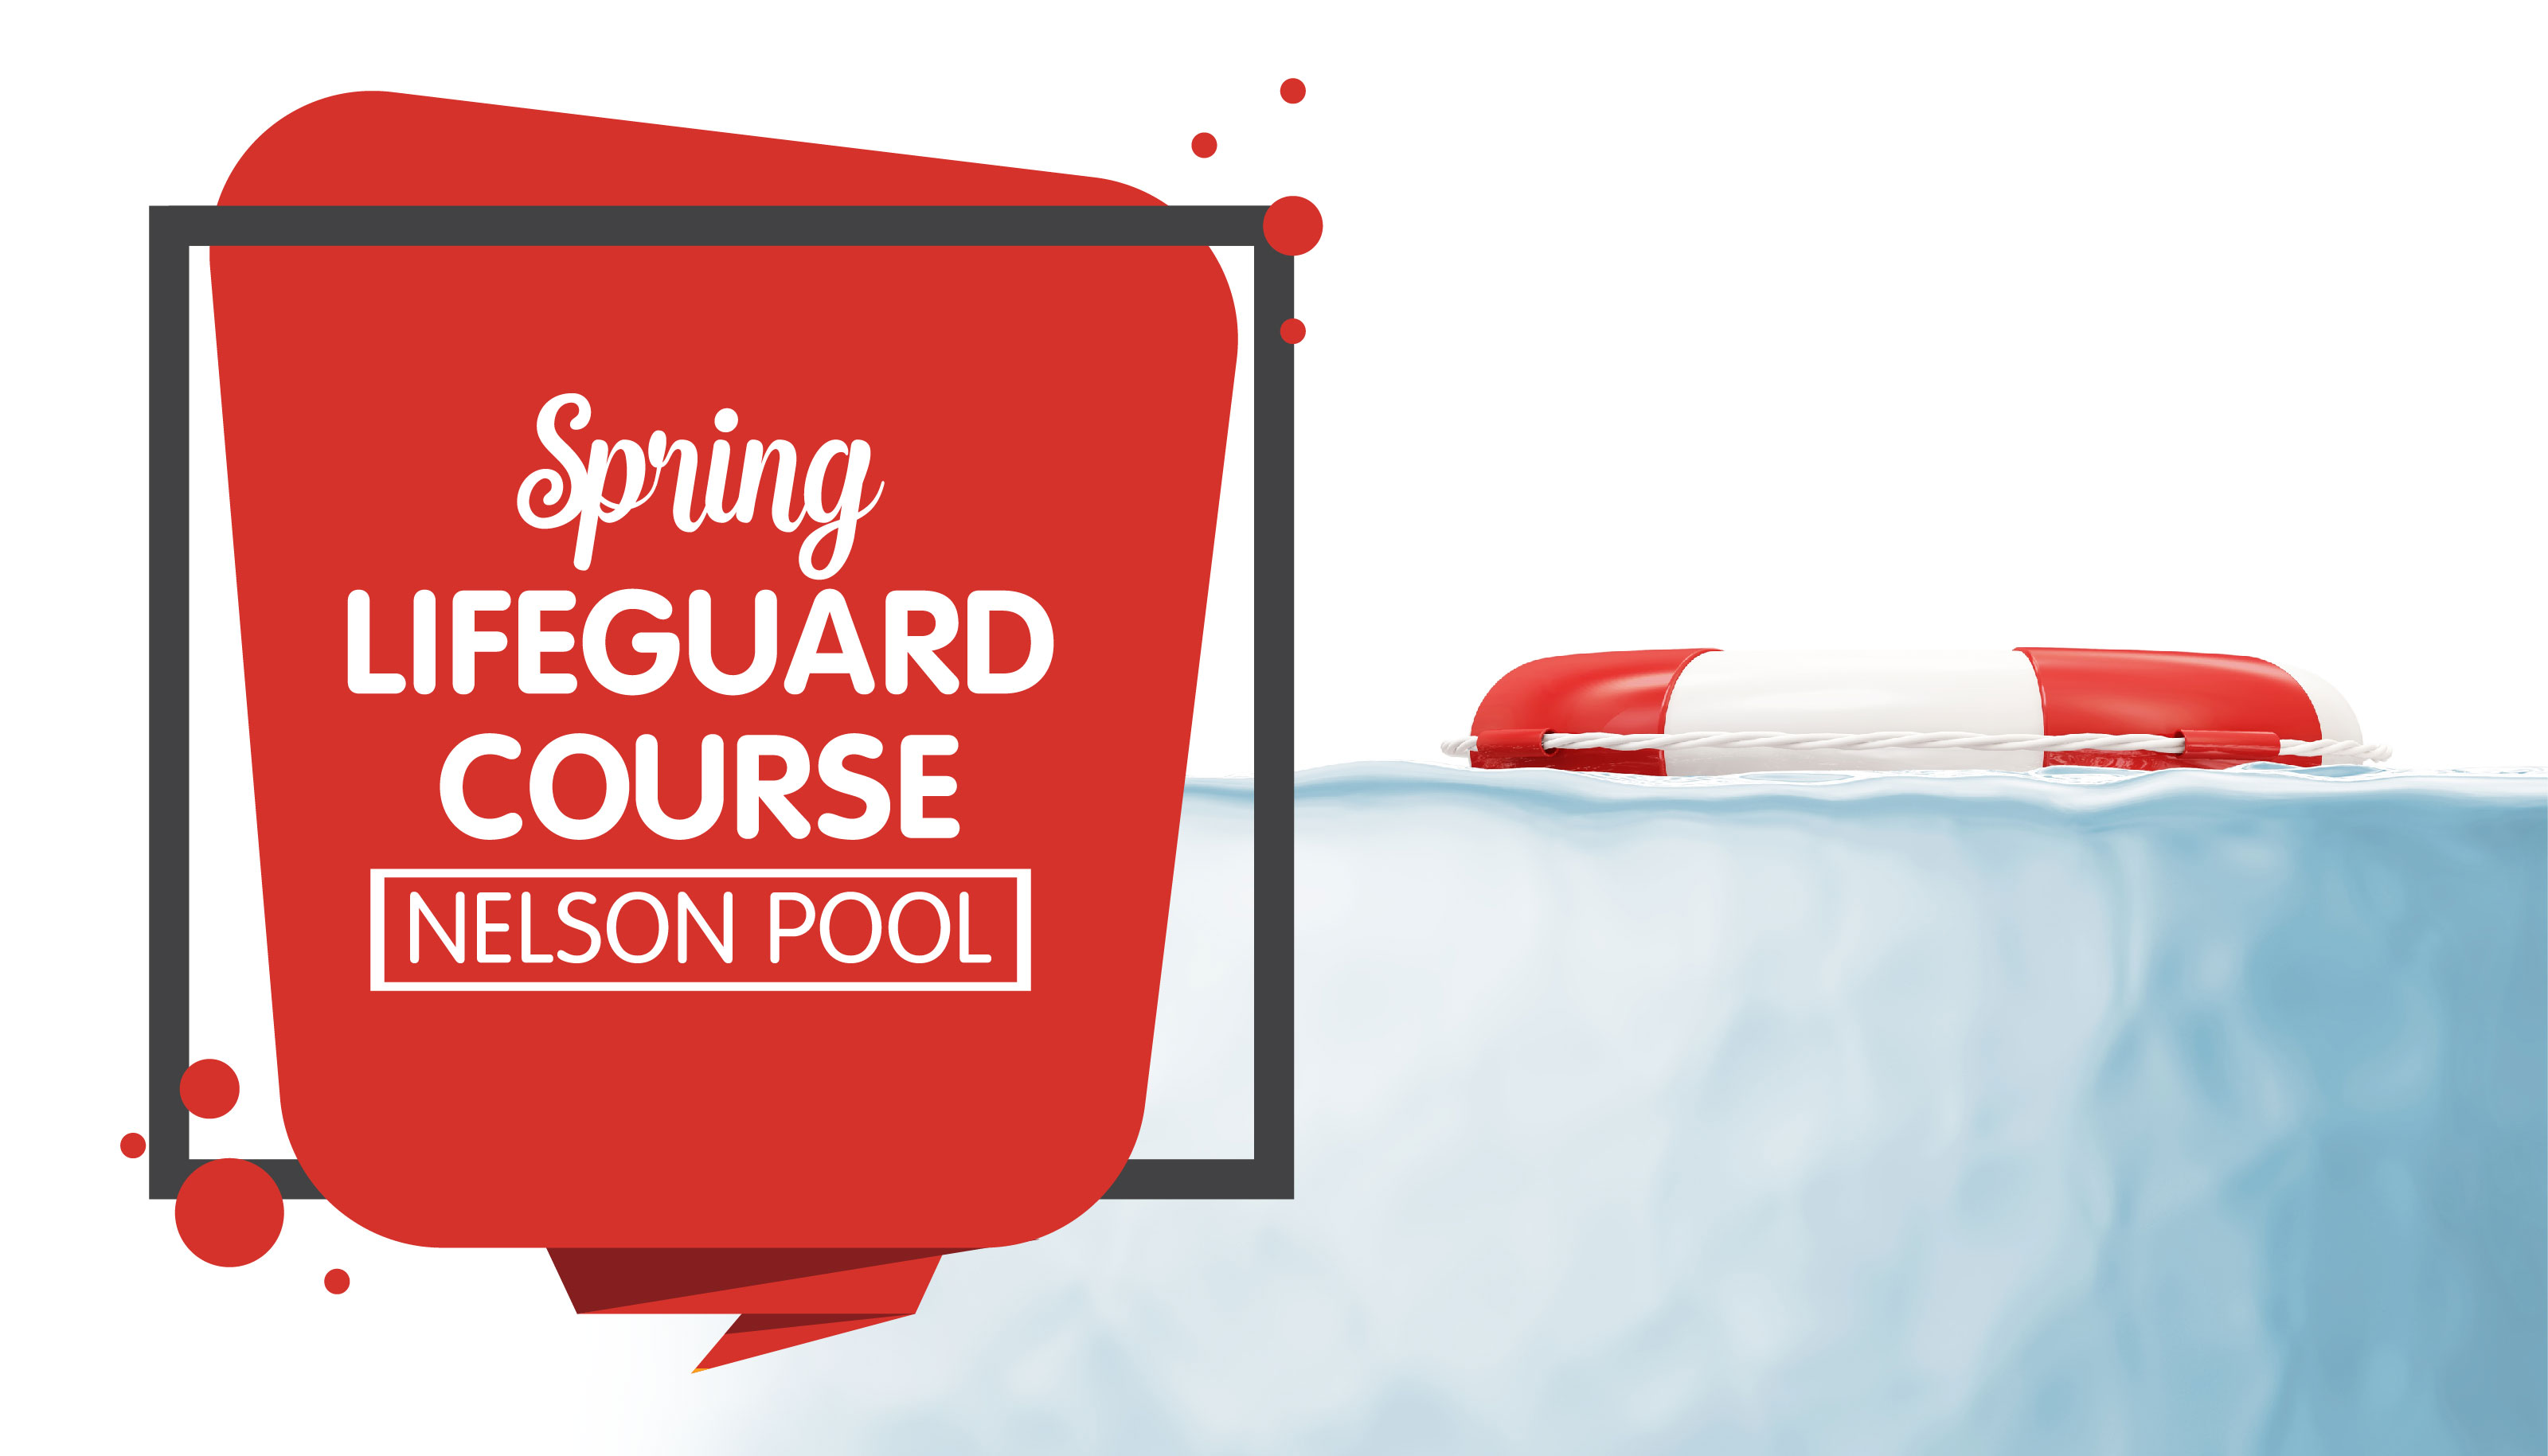 Spring Lifeguard Course